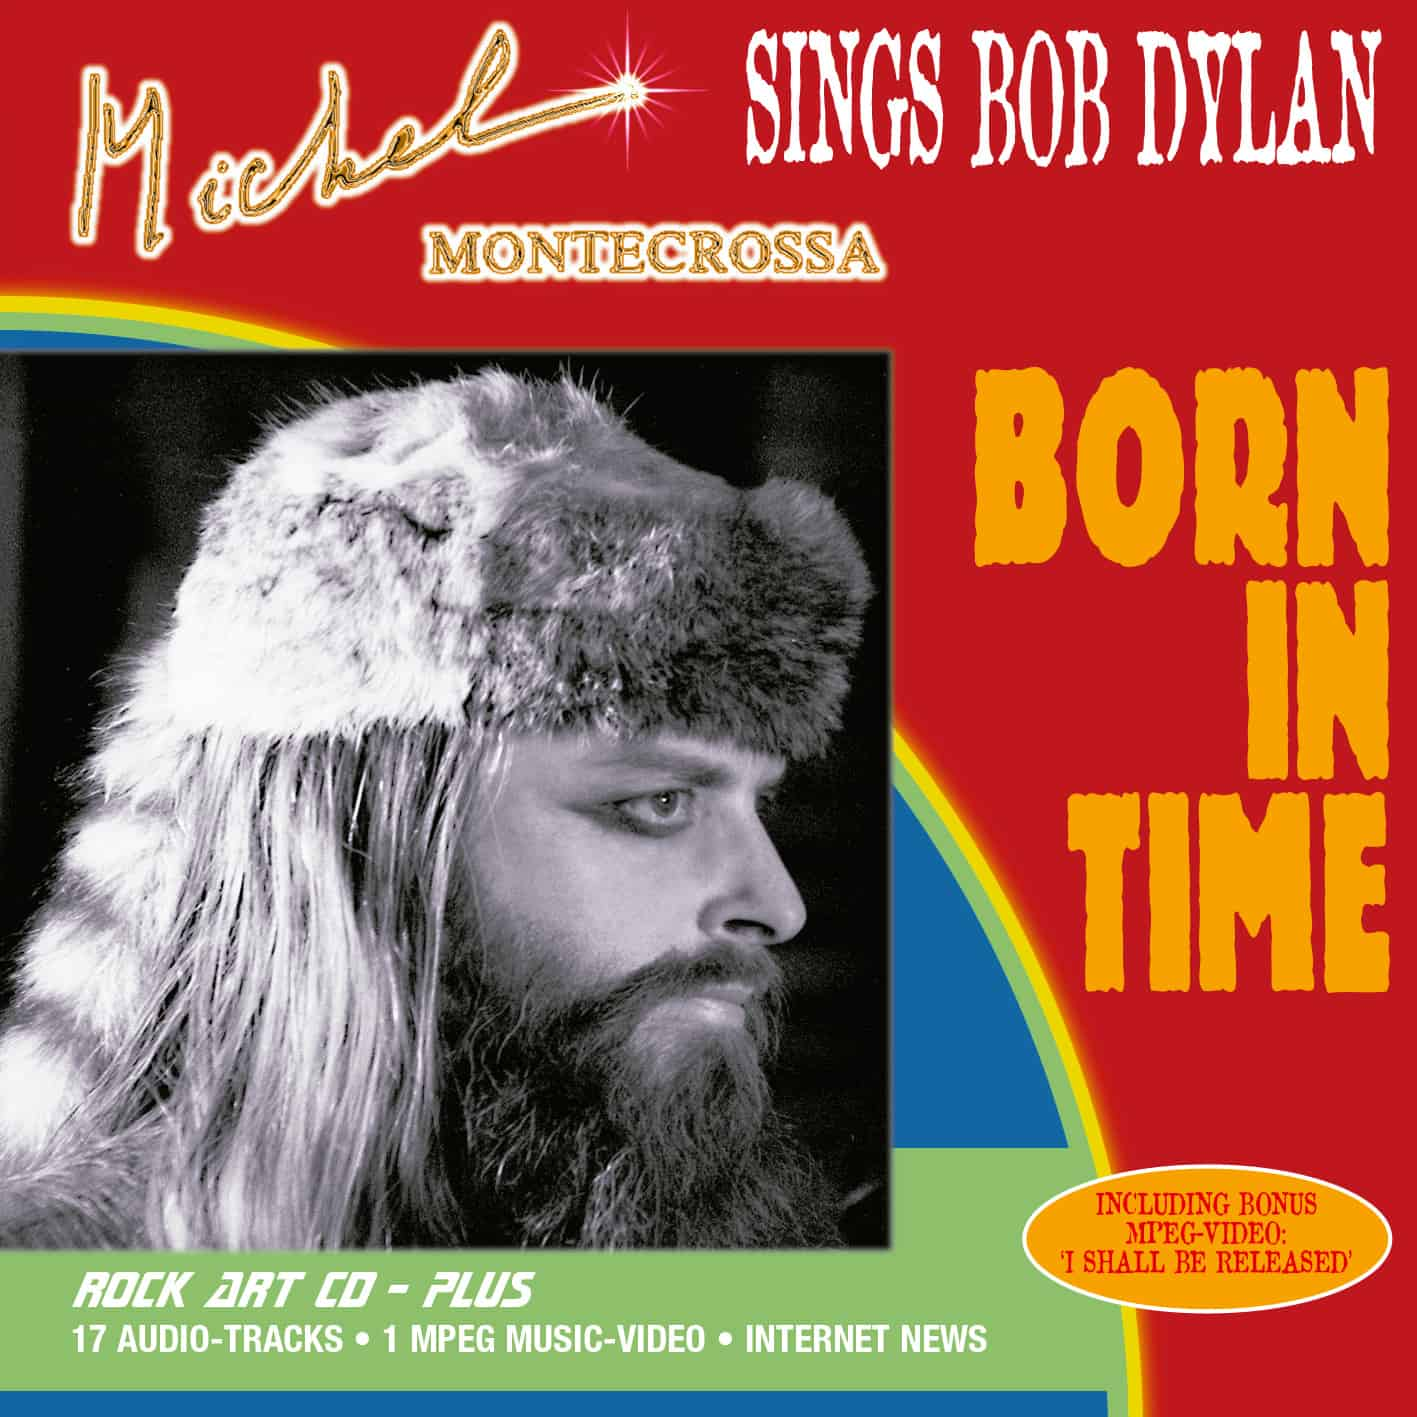 CD 'Born In Time' - Michel Montecrossa sings Bob Dylan